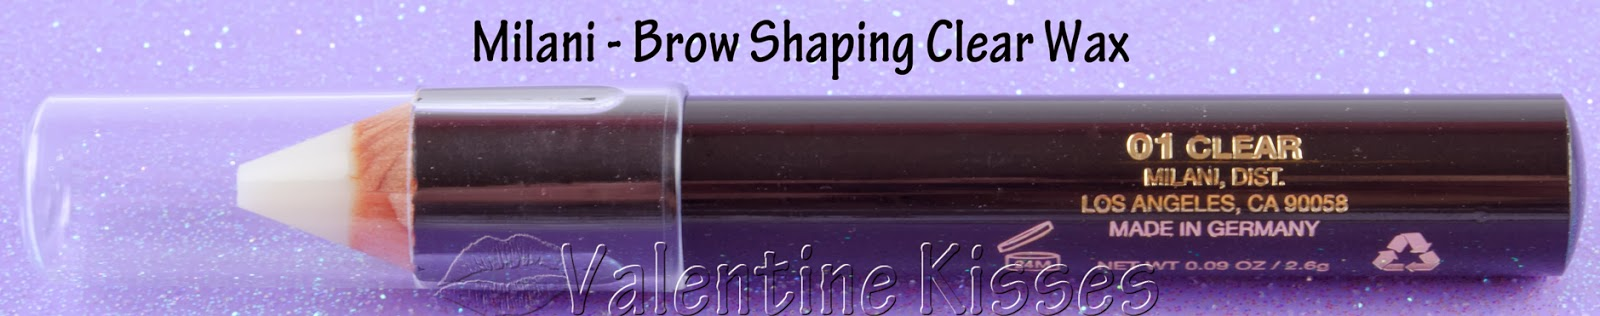 Brow Shaping Clear Wax Pencil by Milani #11